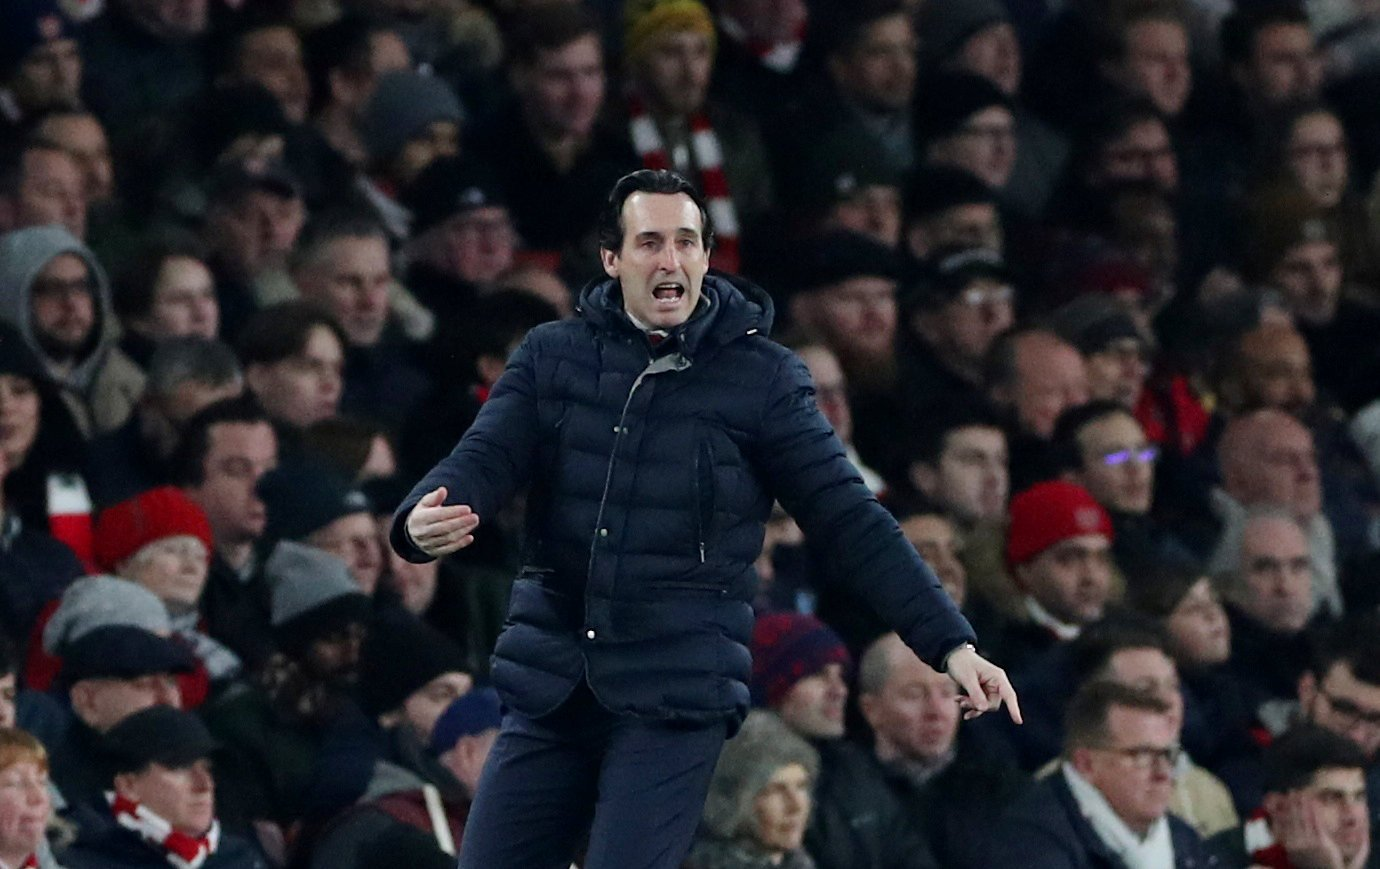 Arsenal fans on Twitter were in jubilation upon seeing Emery's setup for Wolves